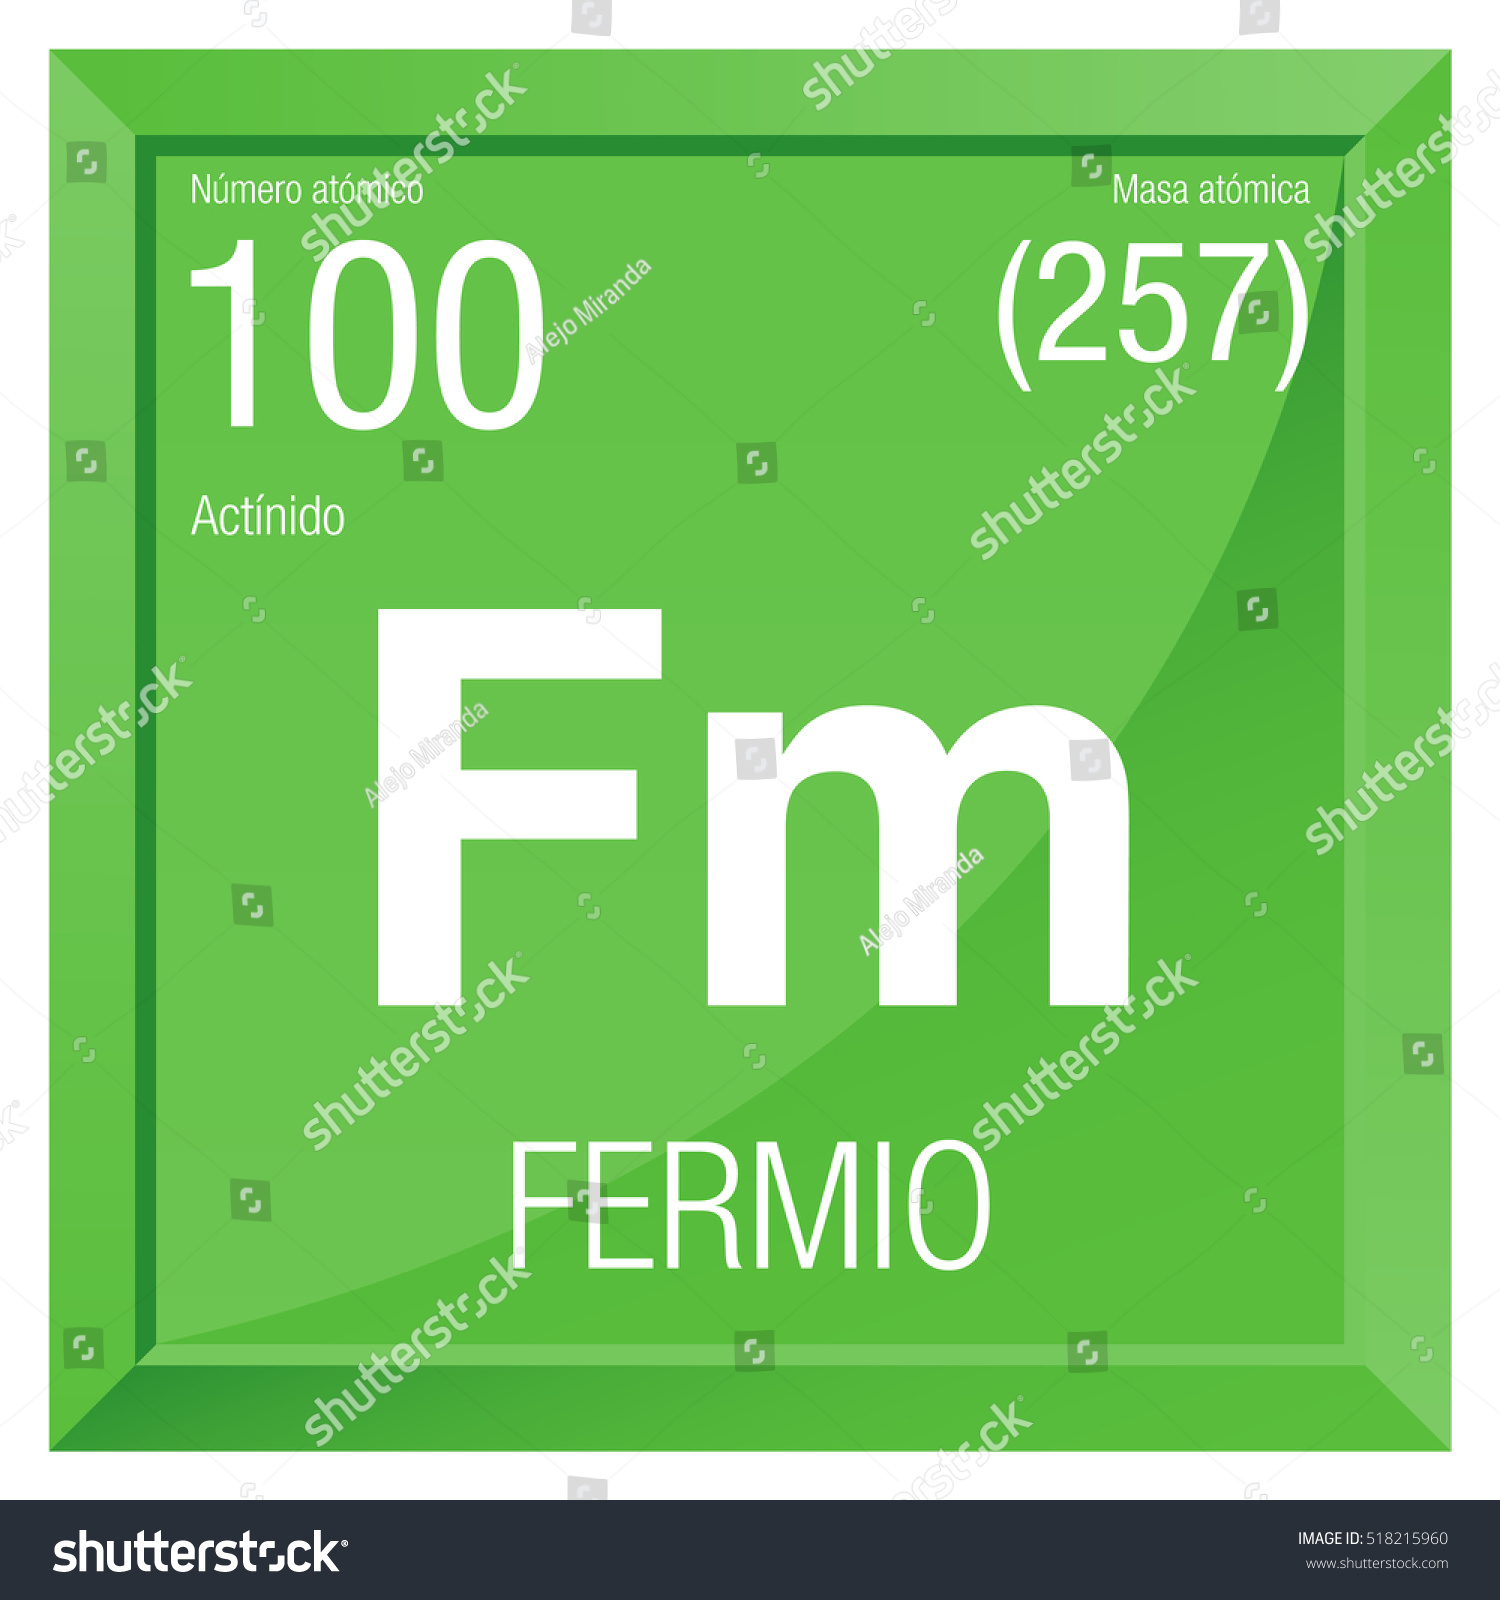 Mercury periodic table symbol images periodic table images mercury periodic table symbol choice image periodic table images mercury periodic table symbol images periodic table gamestrikefo Images